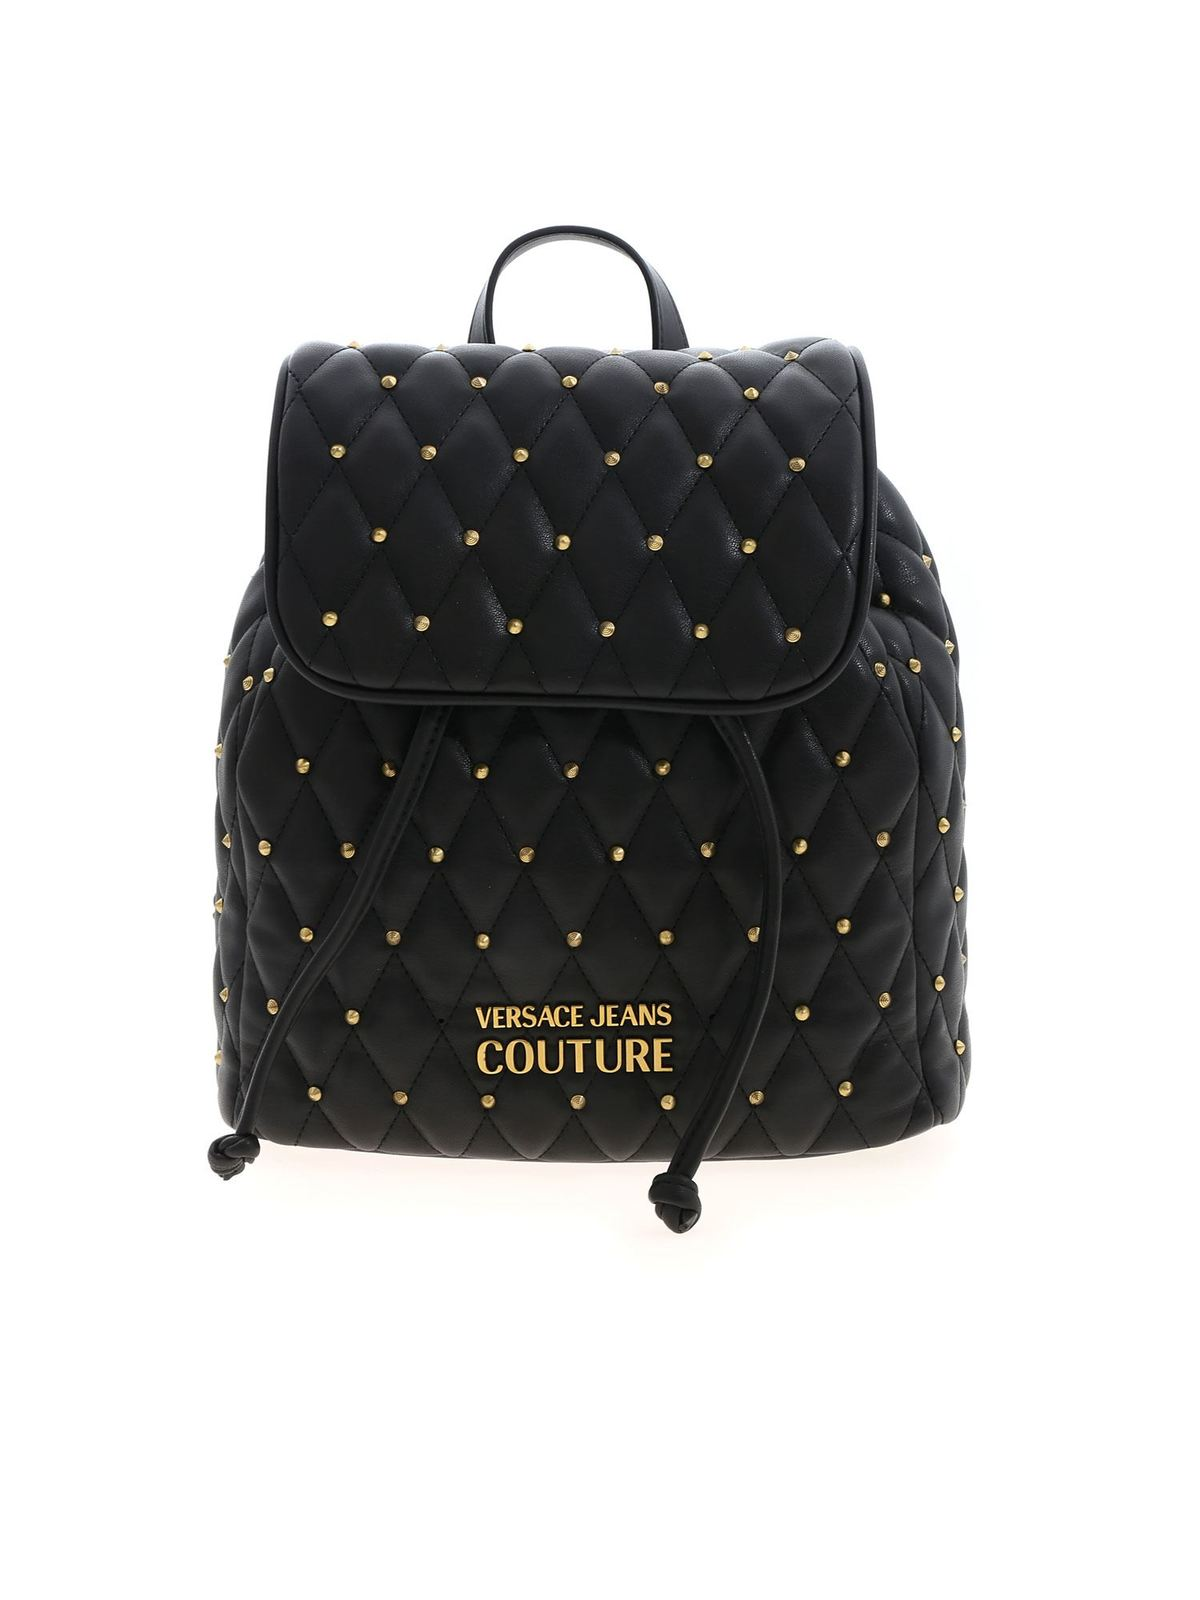 Versace Jeans Couture STUDS BACKPACK IN BLACK